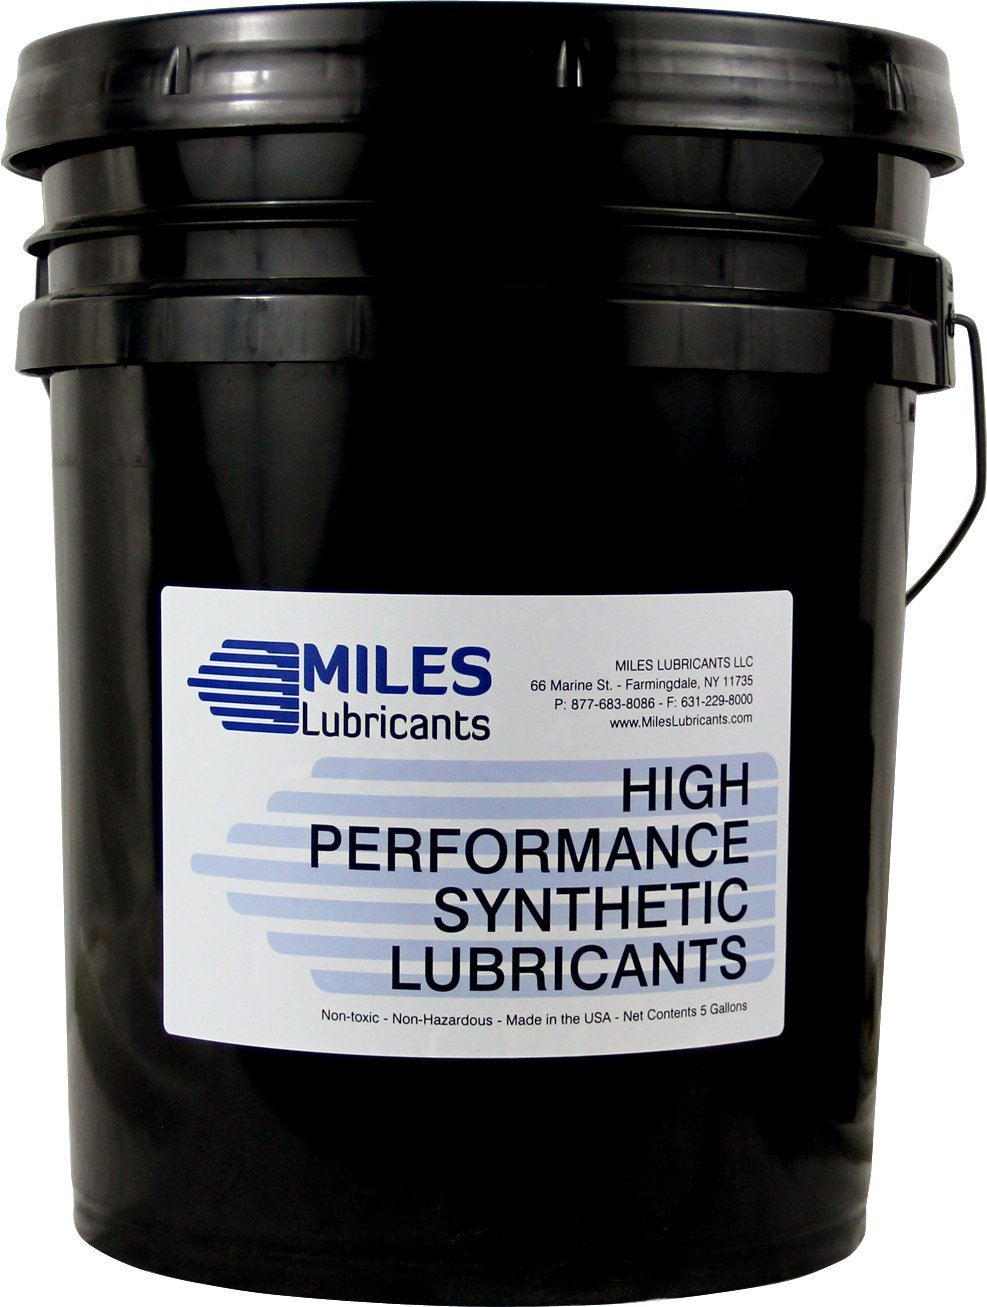 Food Grade Compressor Cleaner & Lubricant Iso 68, 5 Gallon, Pail